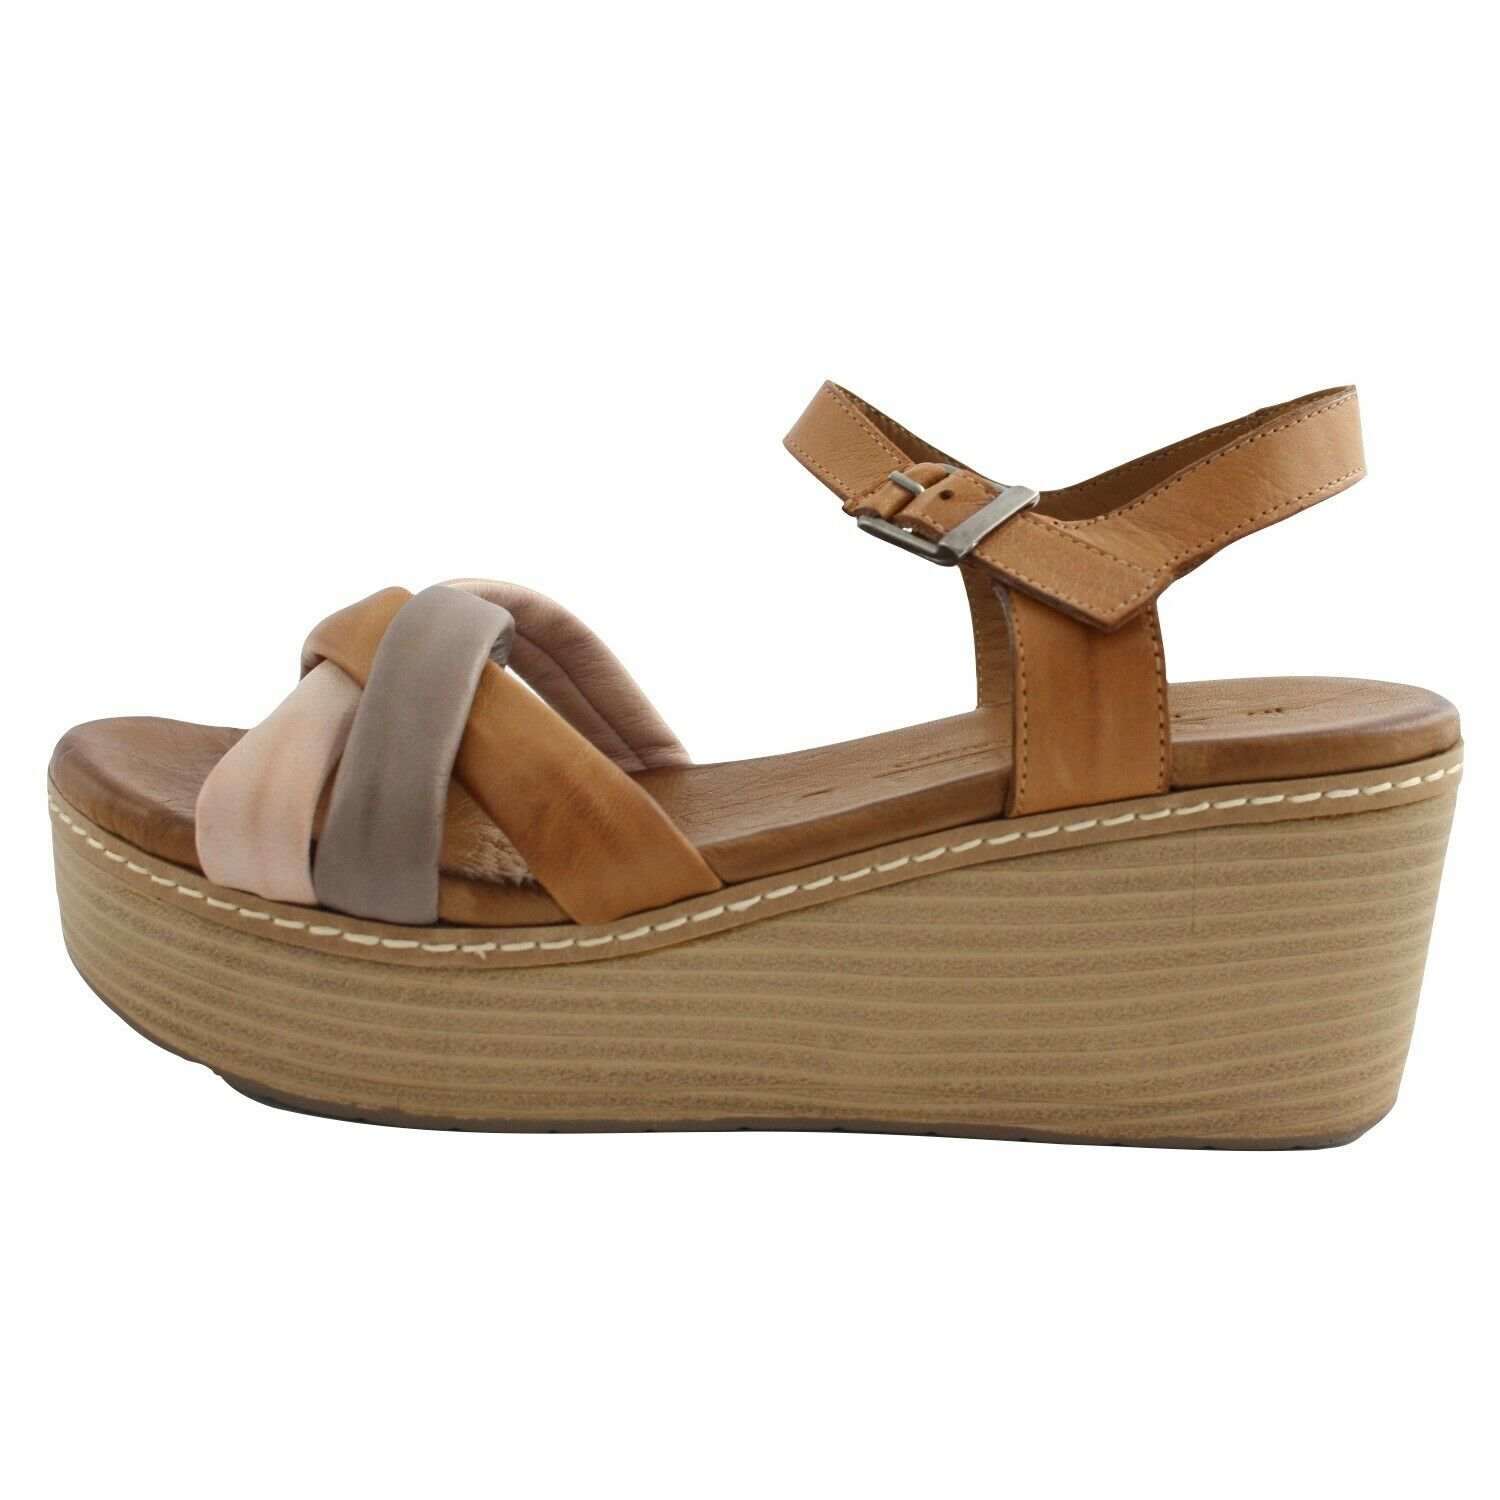 Shoes Summer Sandals Carmela Woman Brown Leather Wedge Comfortable